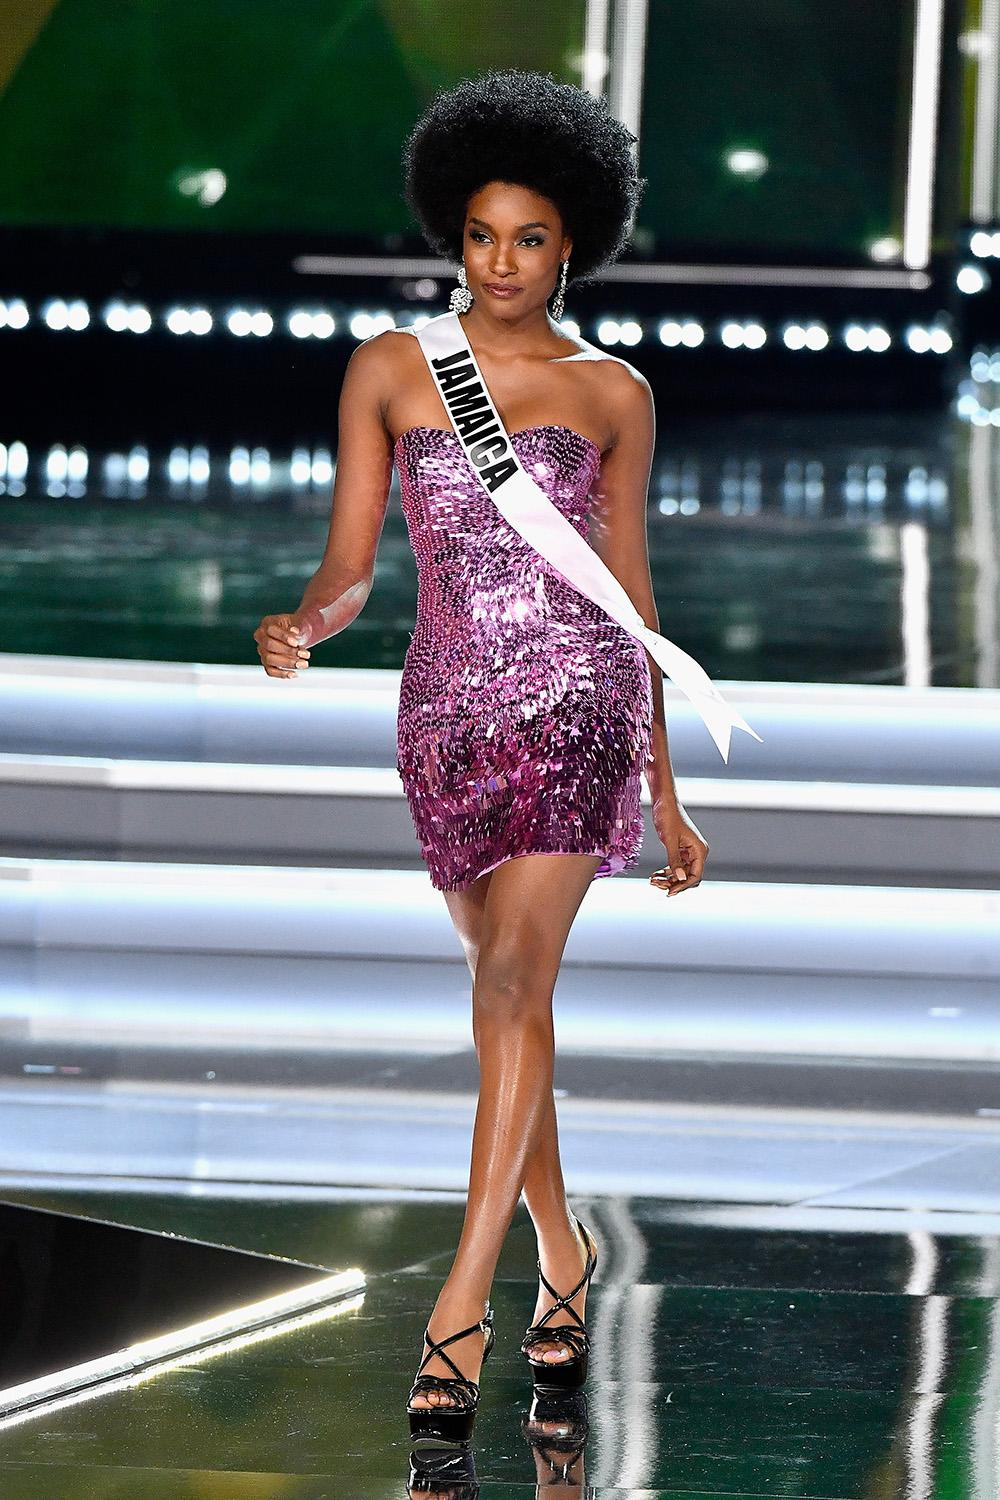 b5bf18714a Miss Jamaica 2017, Davina Bennett, competes during the 2017 Miss Universe  Pageant at The Axis at Planet Hollywood Resort & Casino on Nov.